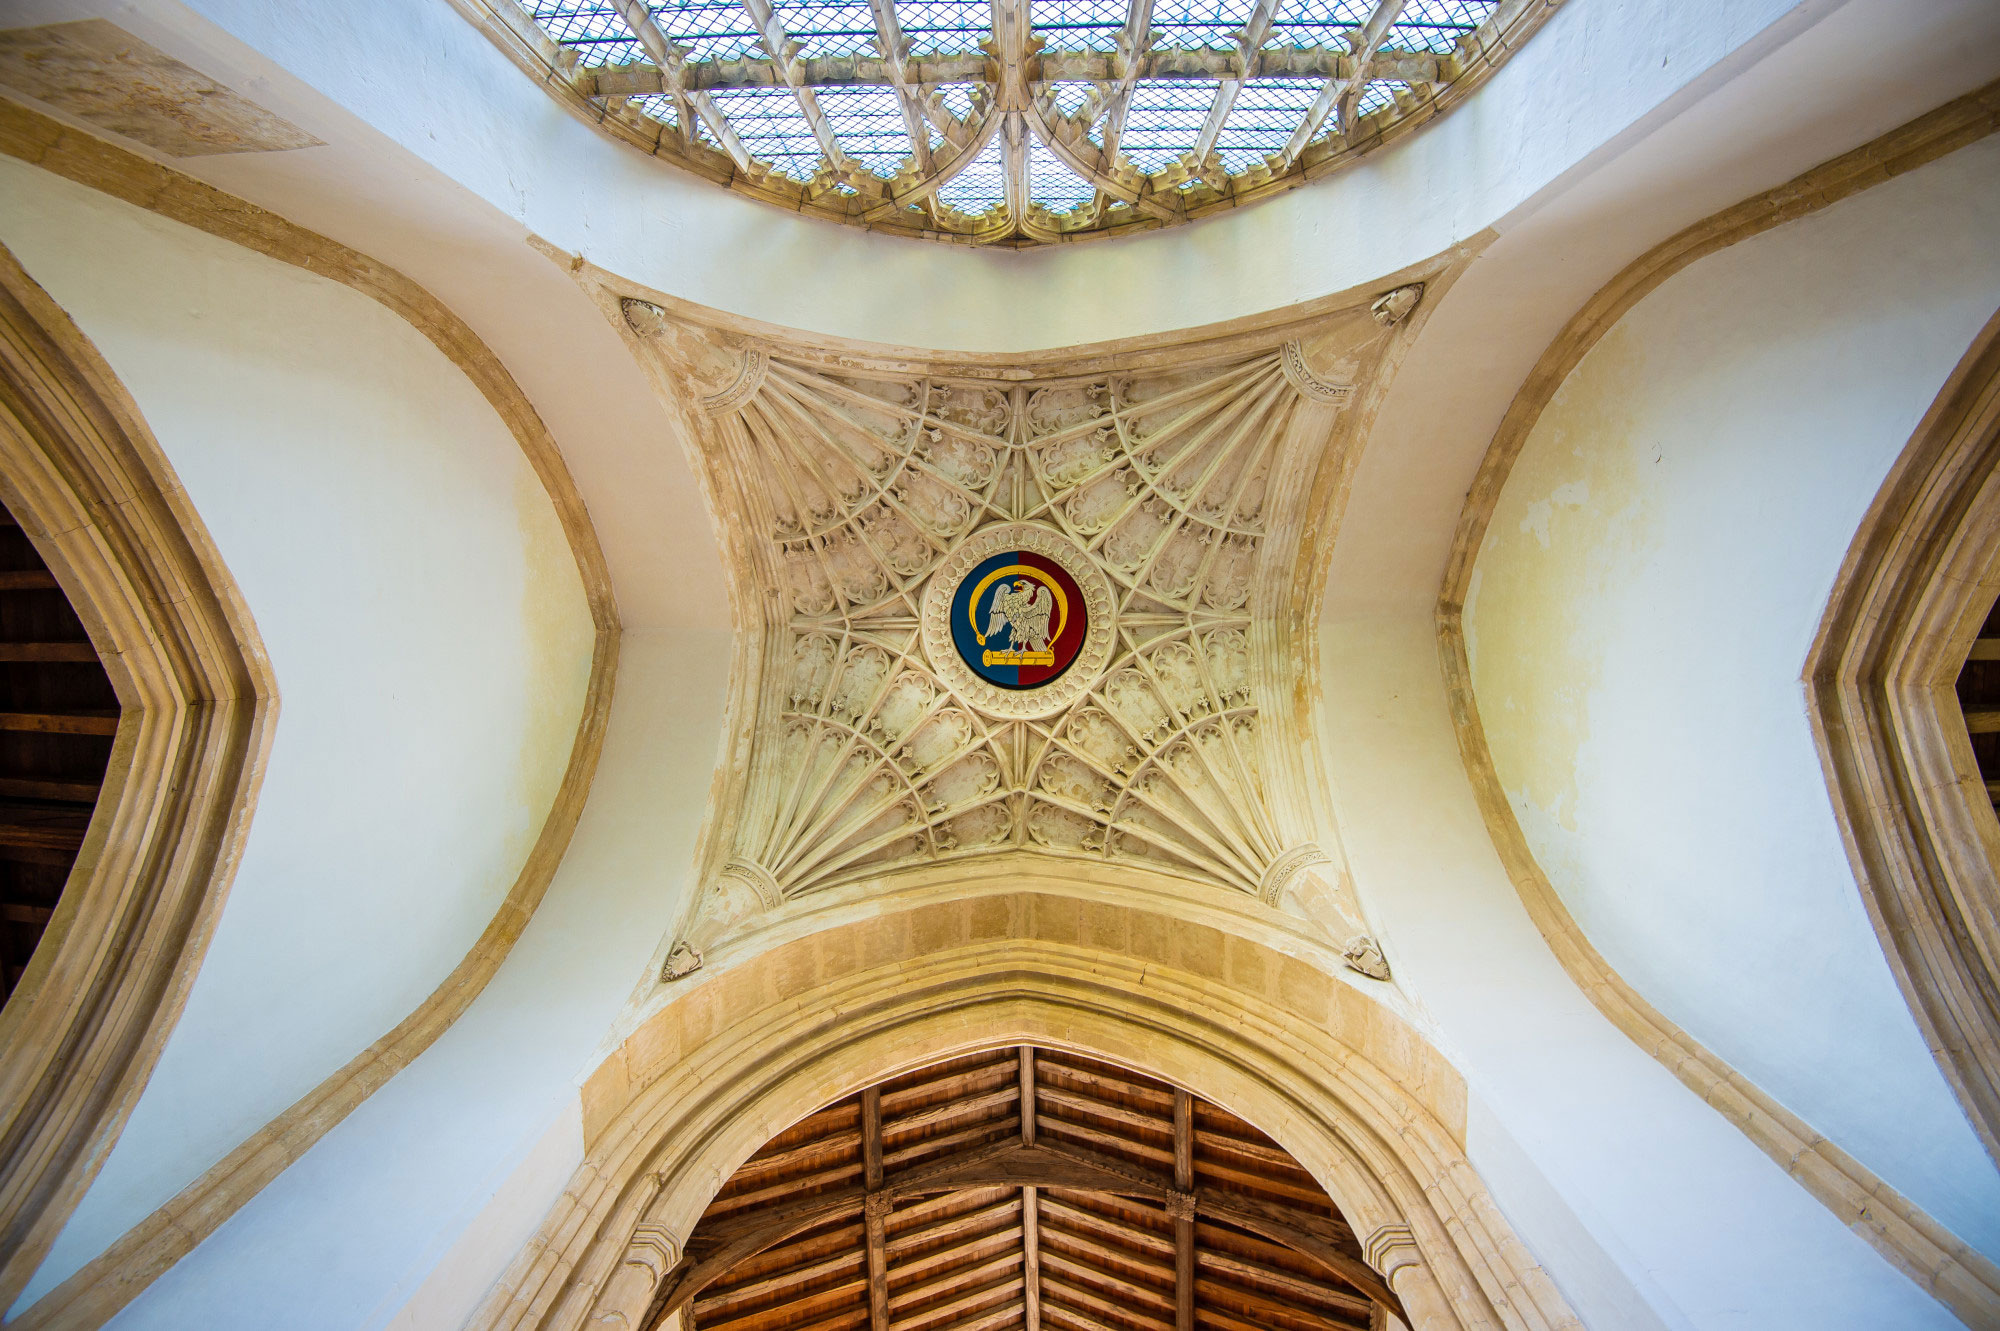 Forthinghay Church indoors ceiling 2